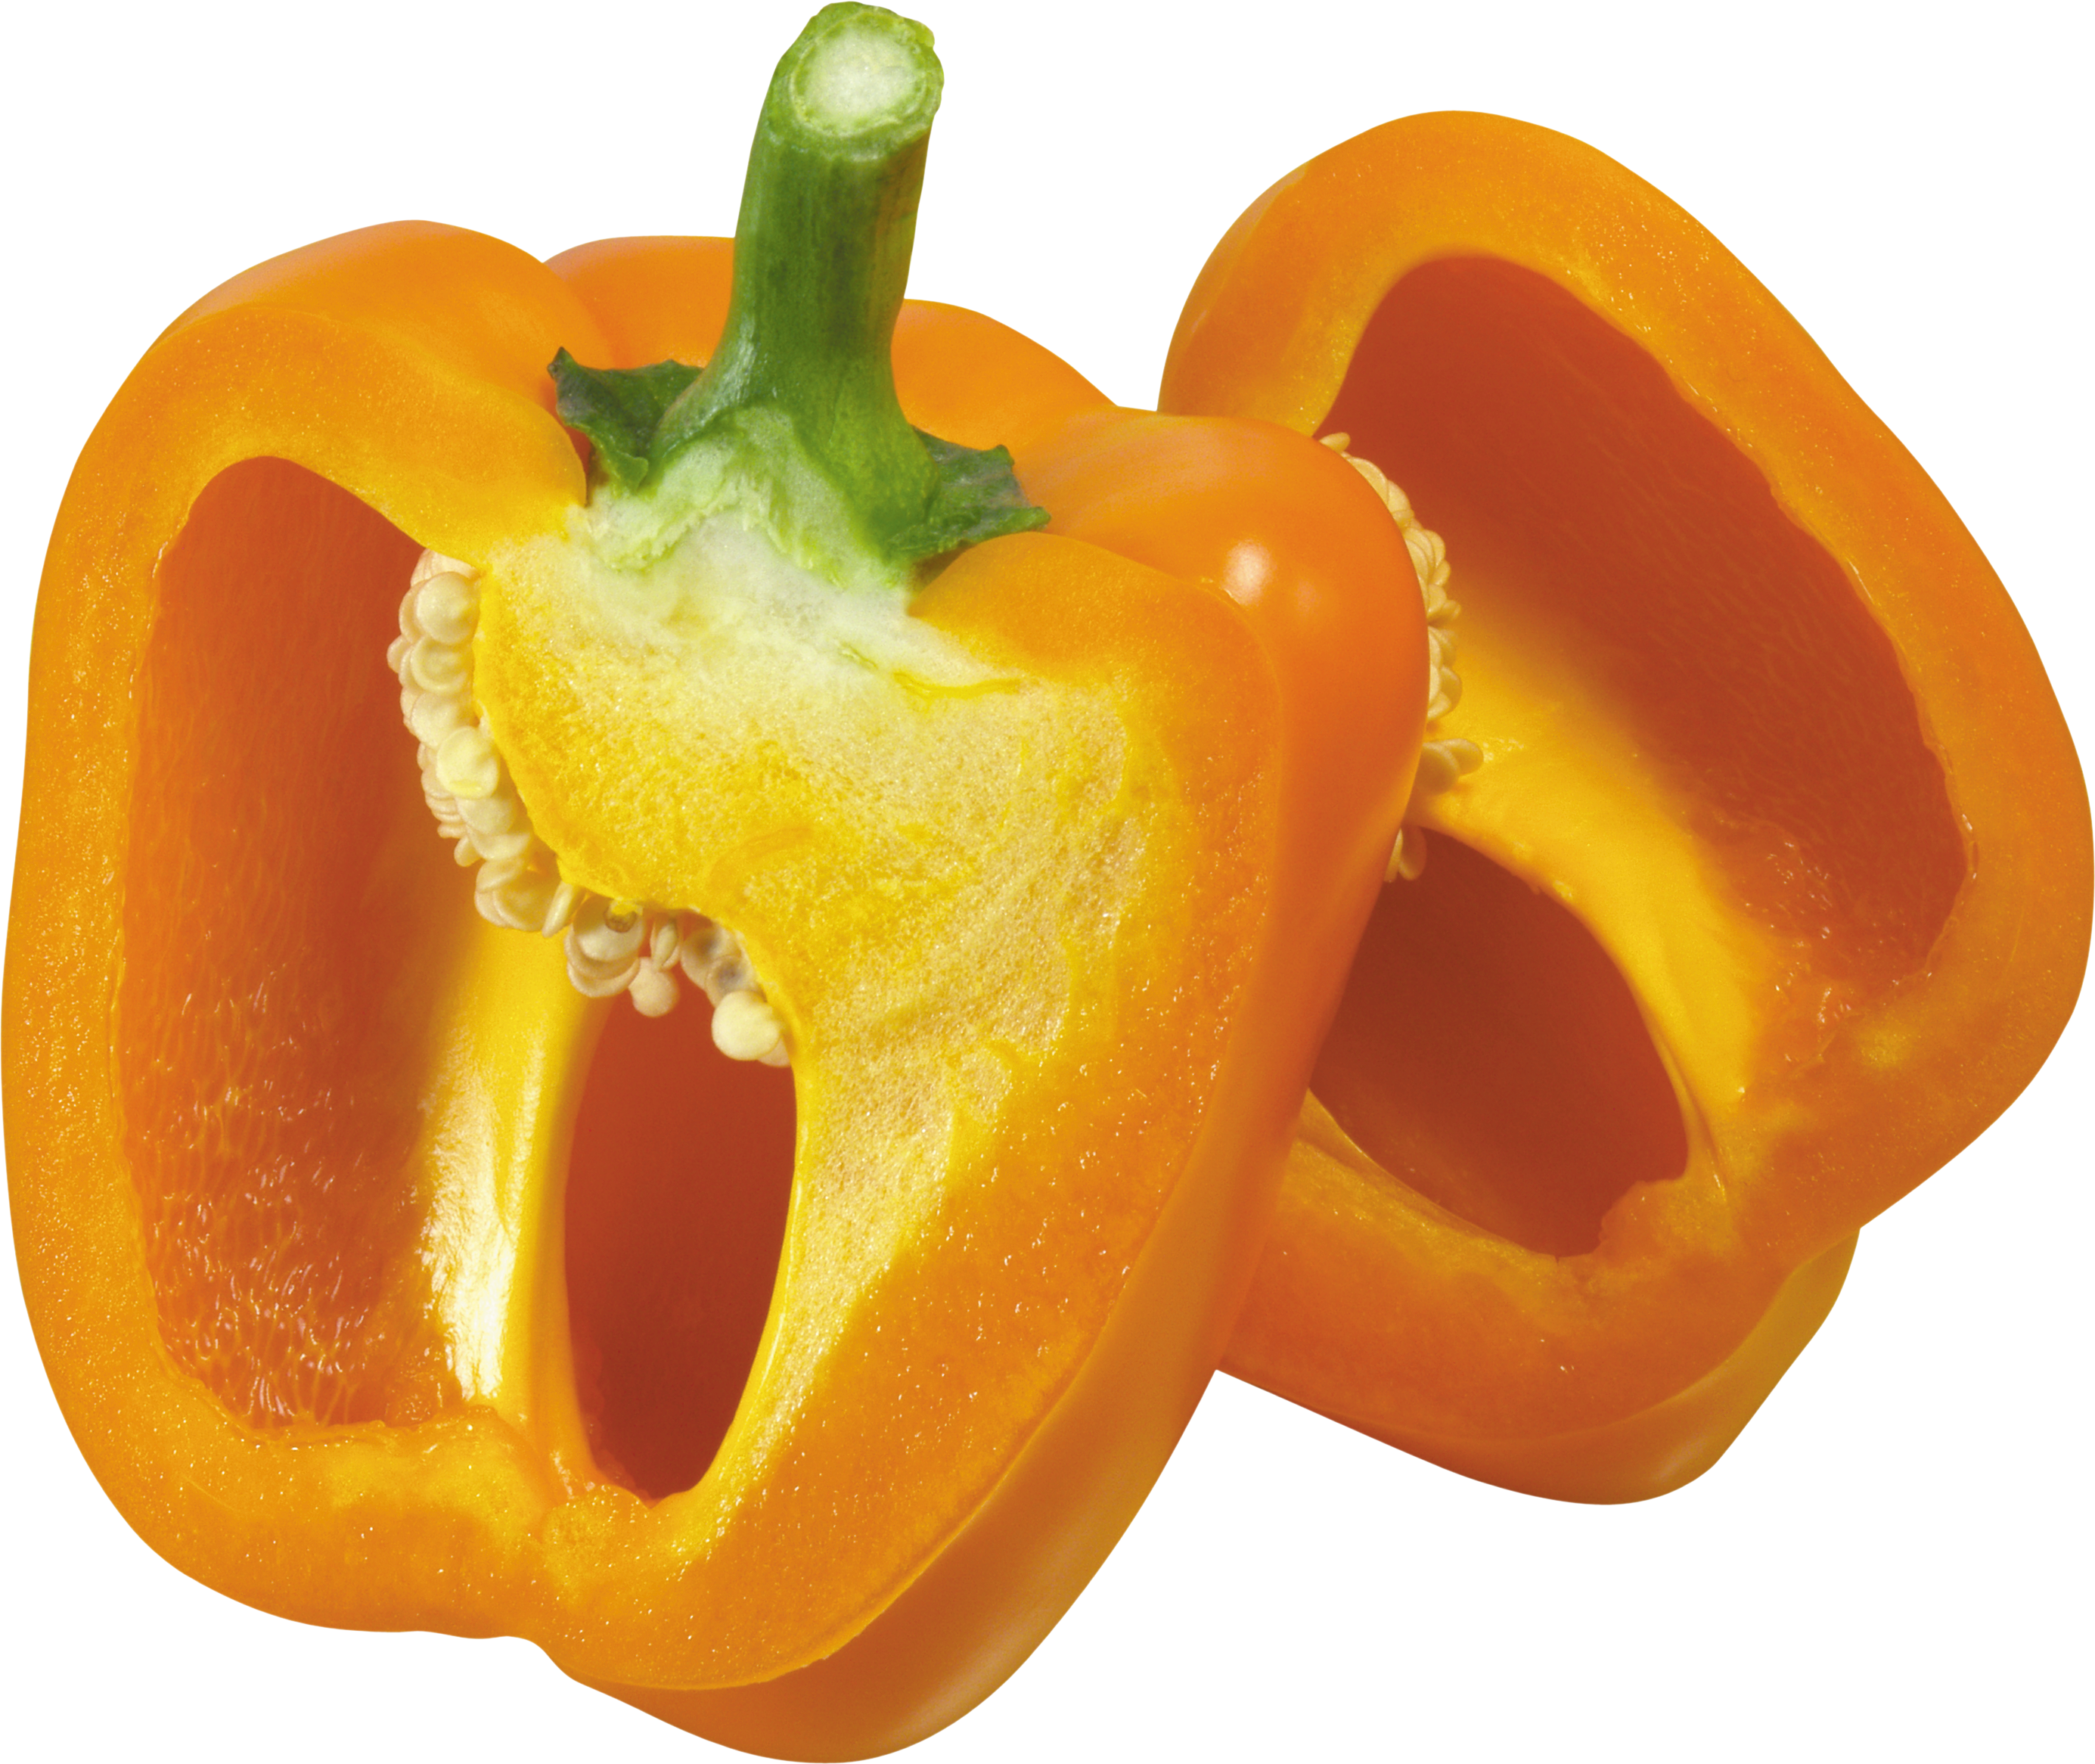 Pepper PNG Image